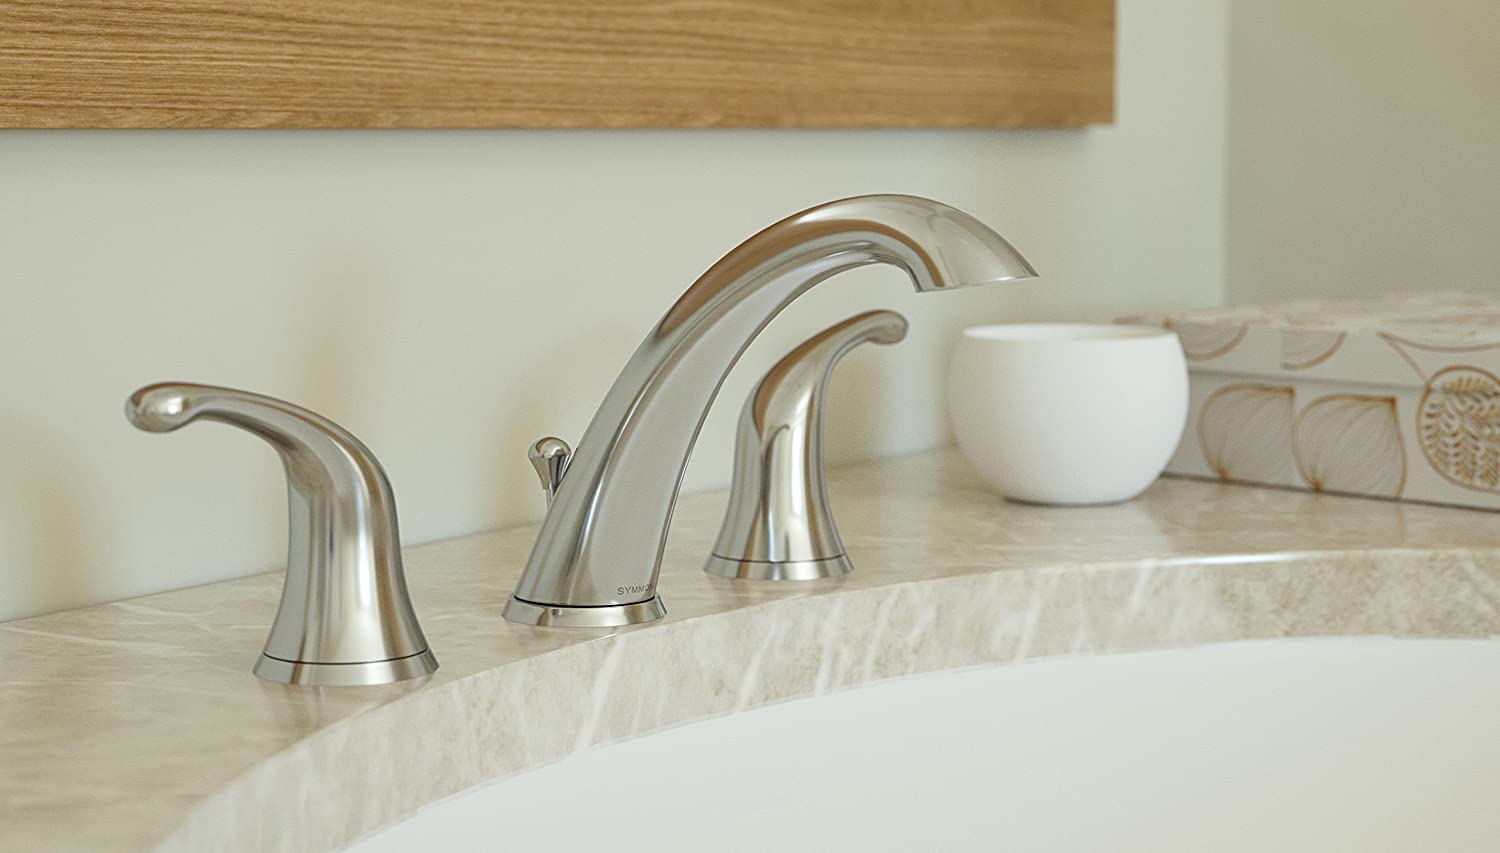 Symmons Unity Two-Handle 8-16 Inch Widespread Bathroom Faucet with Pop-Up Drain /& Lift Rod SLW-6612-1.5 Chrome